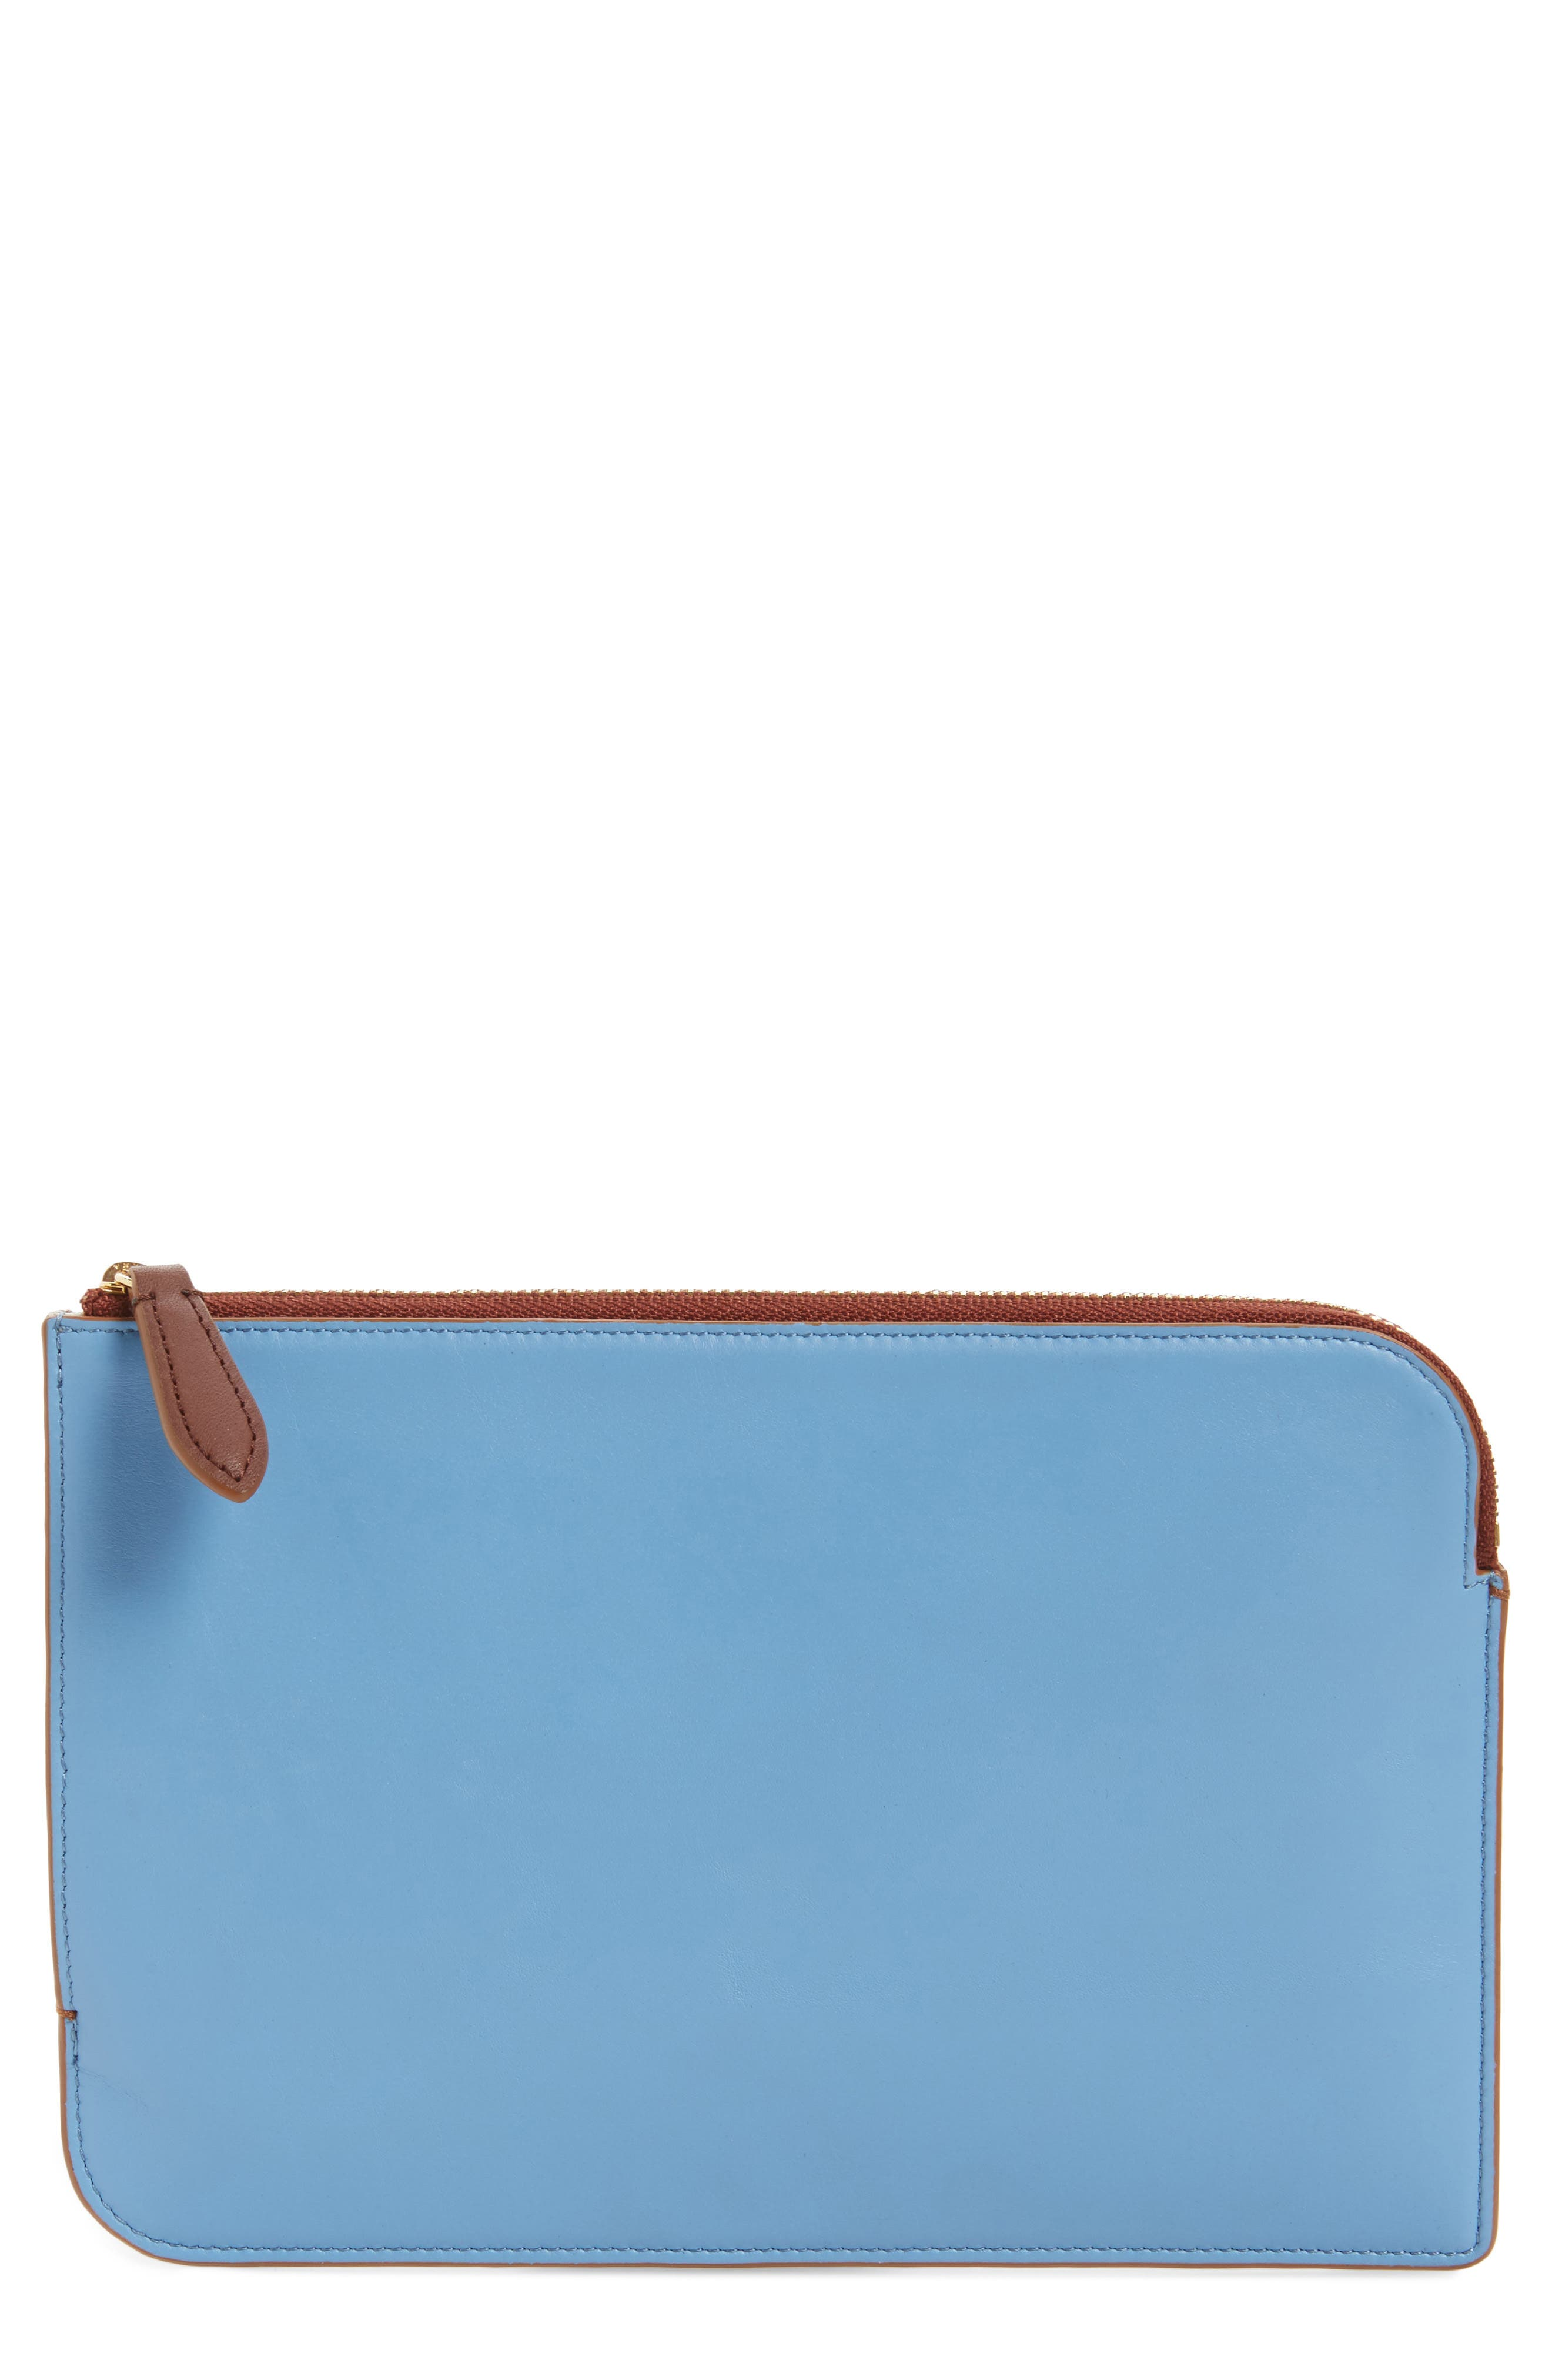 Medium Leather Zip Pouch,                         Main,                         color, Powder Blue/ Dusty Pink